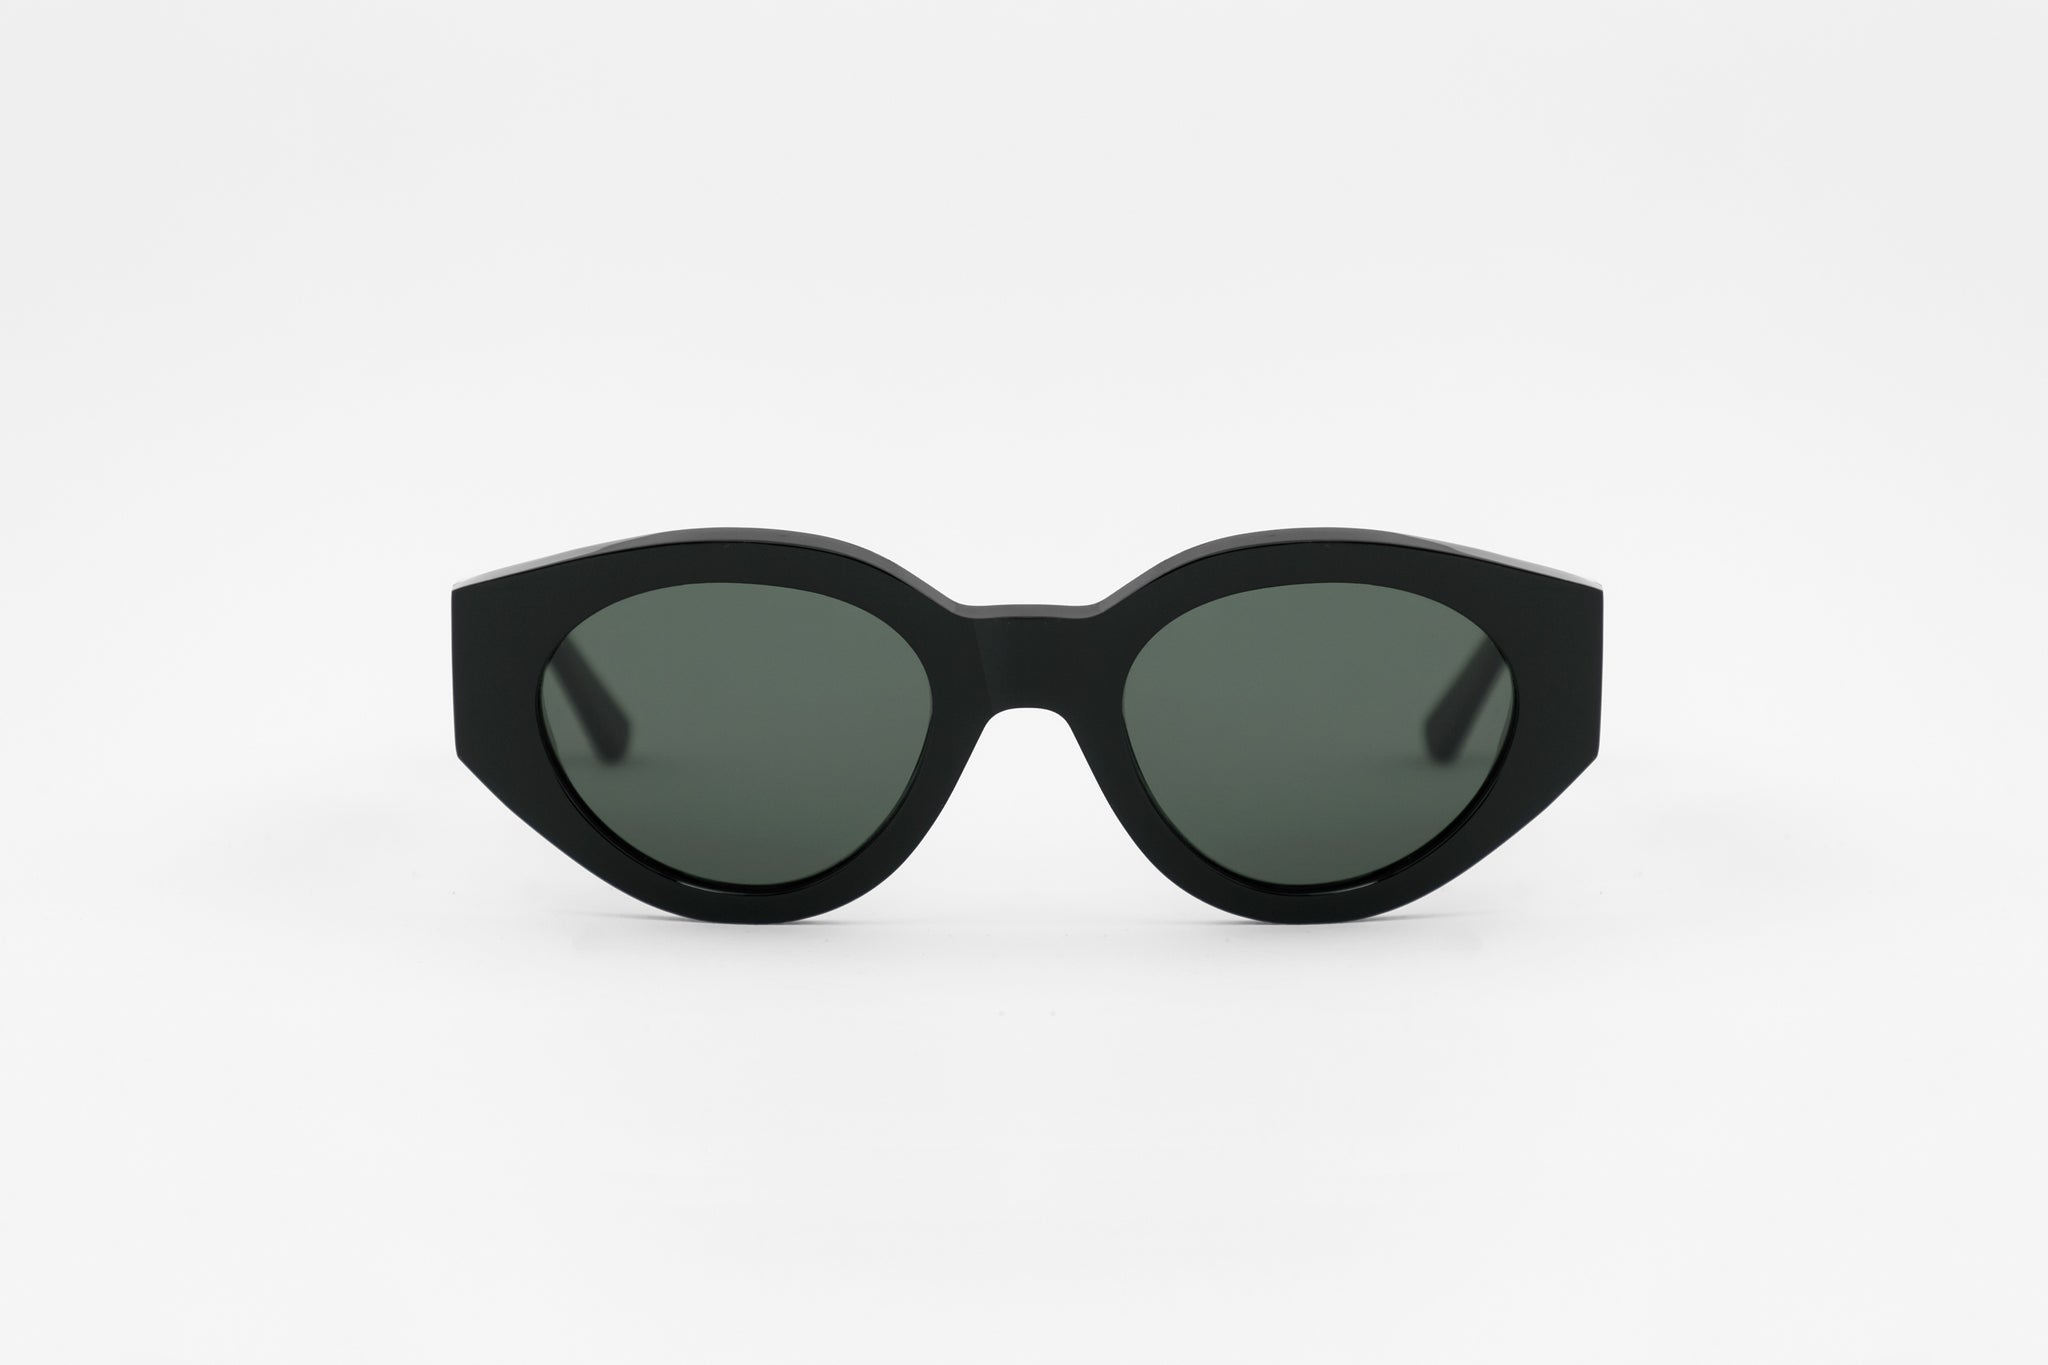 monokel eyewear sunglasses polly black / green solid lens